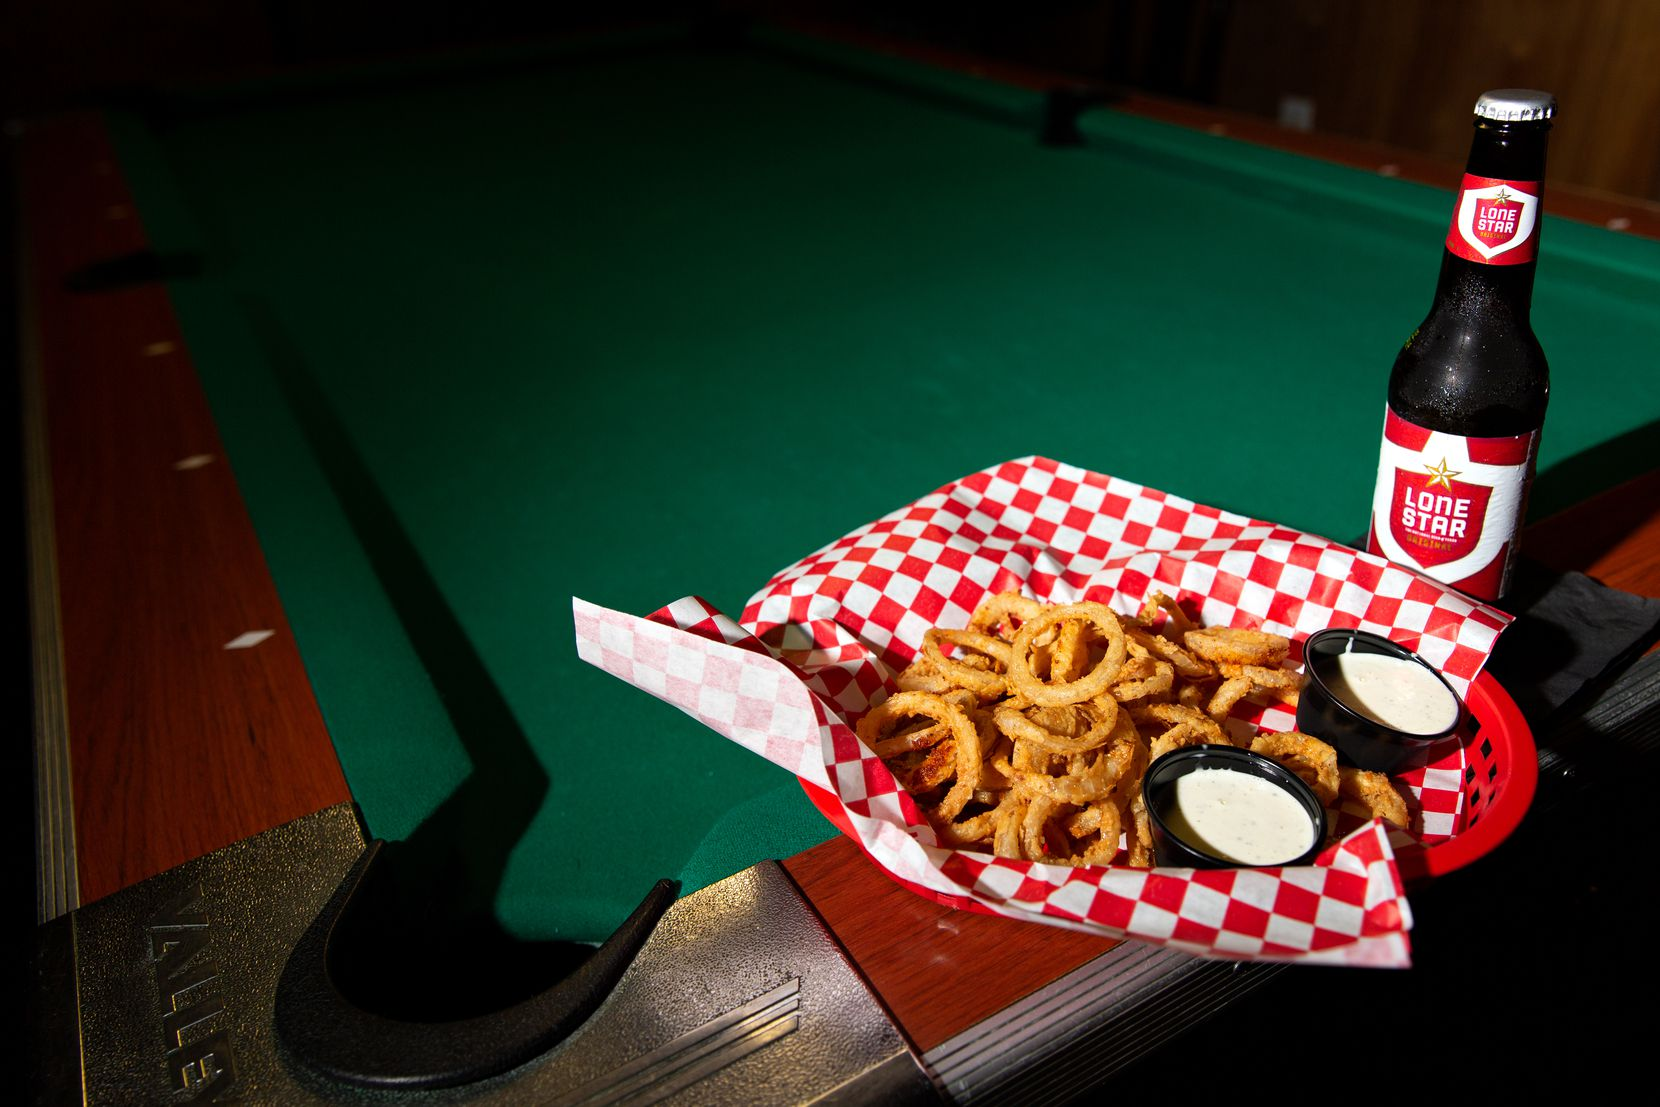 At Lakewood Landing in Dallas, you can pair a round of pool with some Noonday onion rings, which are famously some of the sweetest onions available in the U.S.